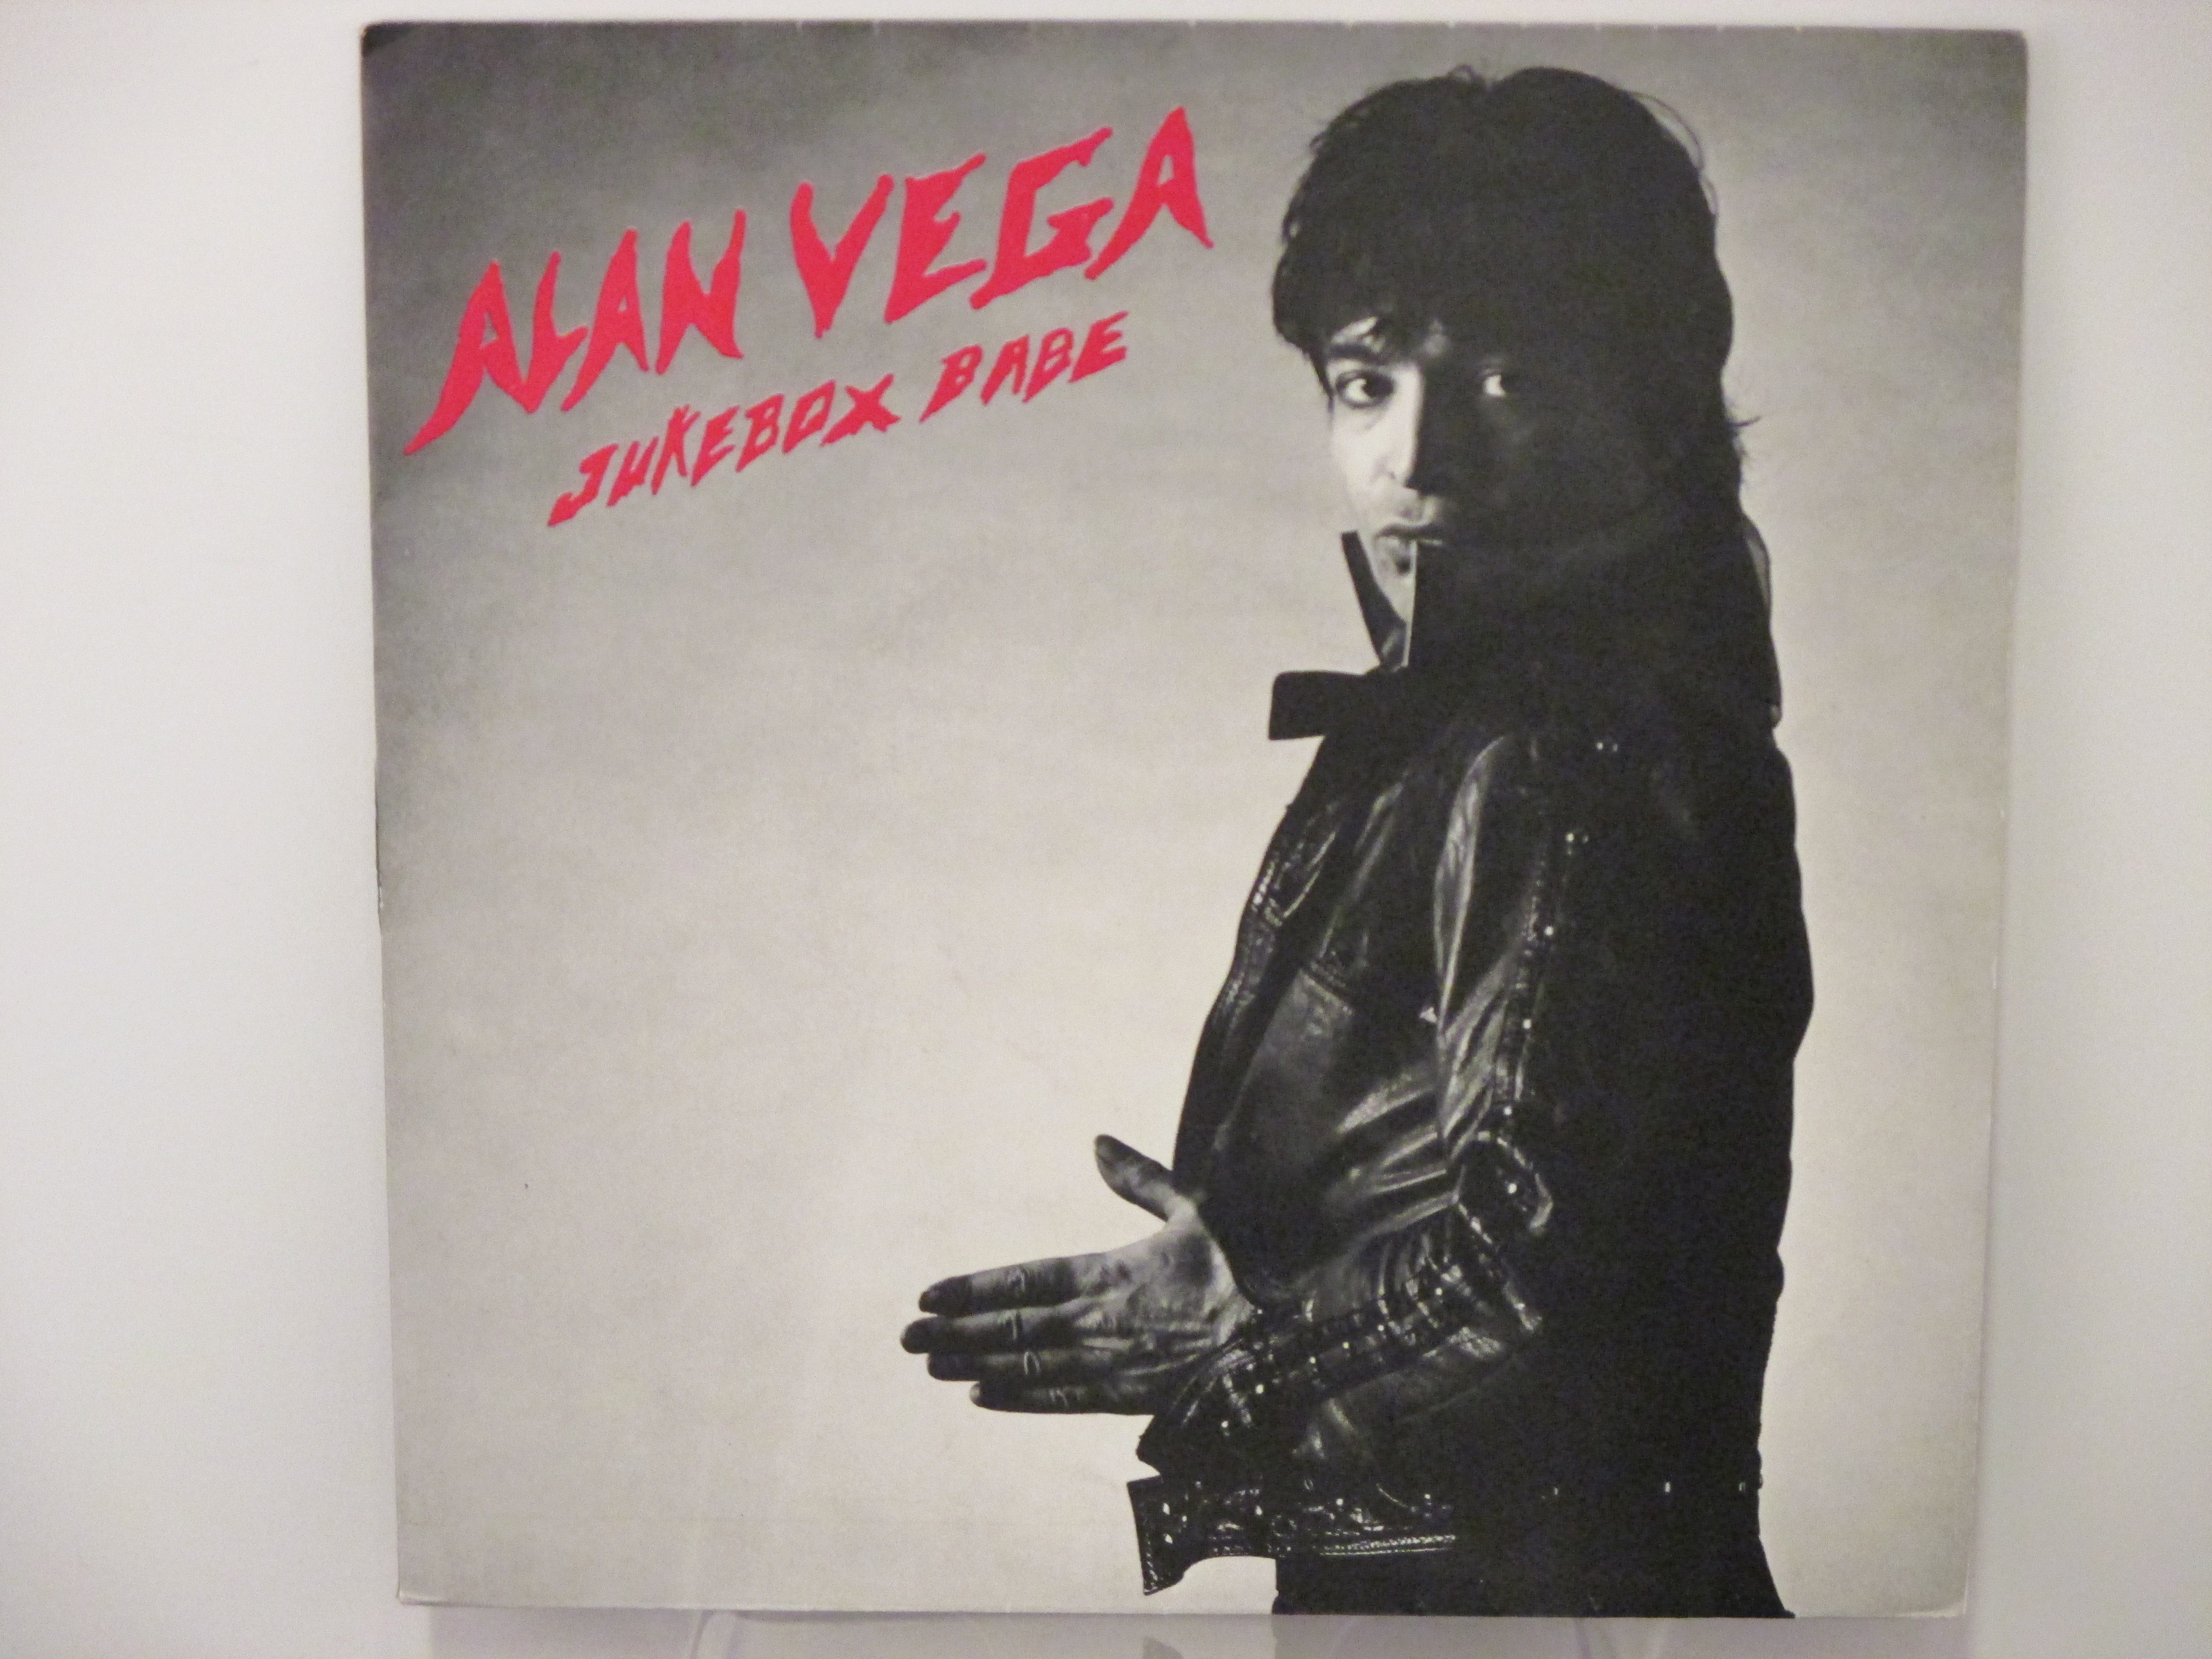 ALAN VEGA (of SUICIDE) : Jukebox babe / Lonely